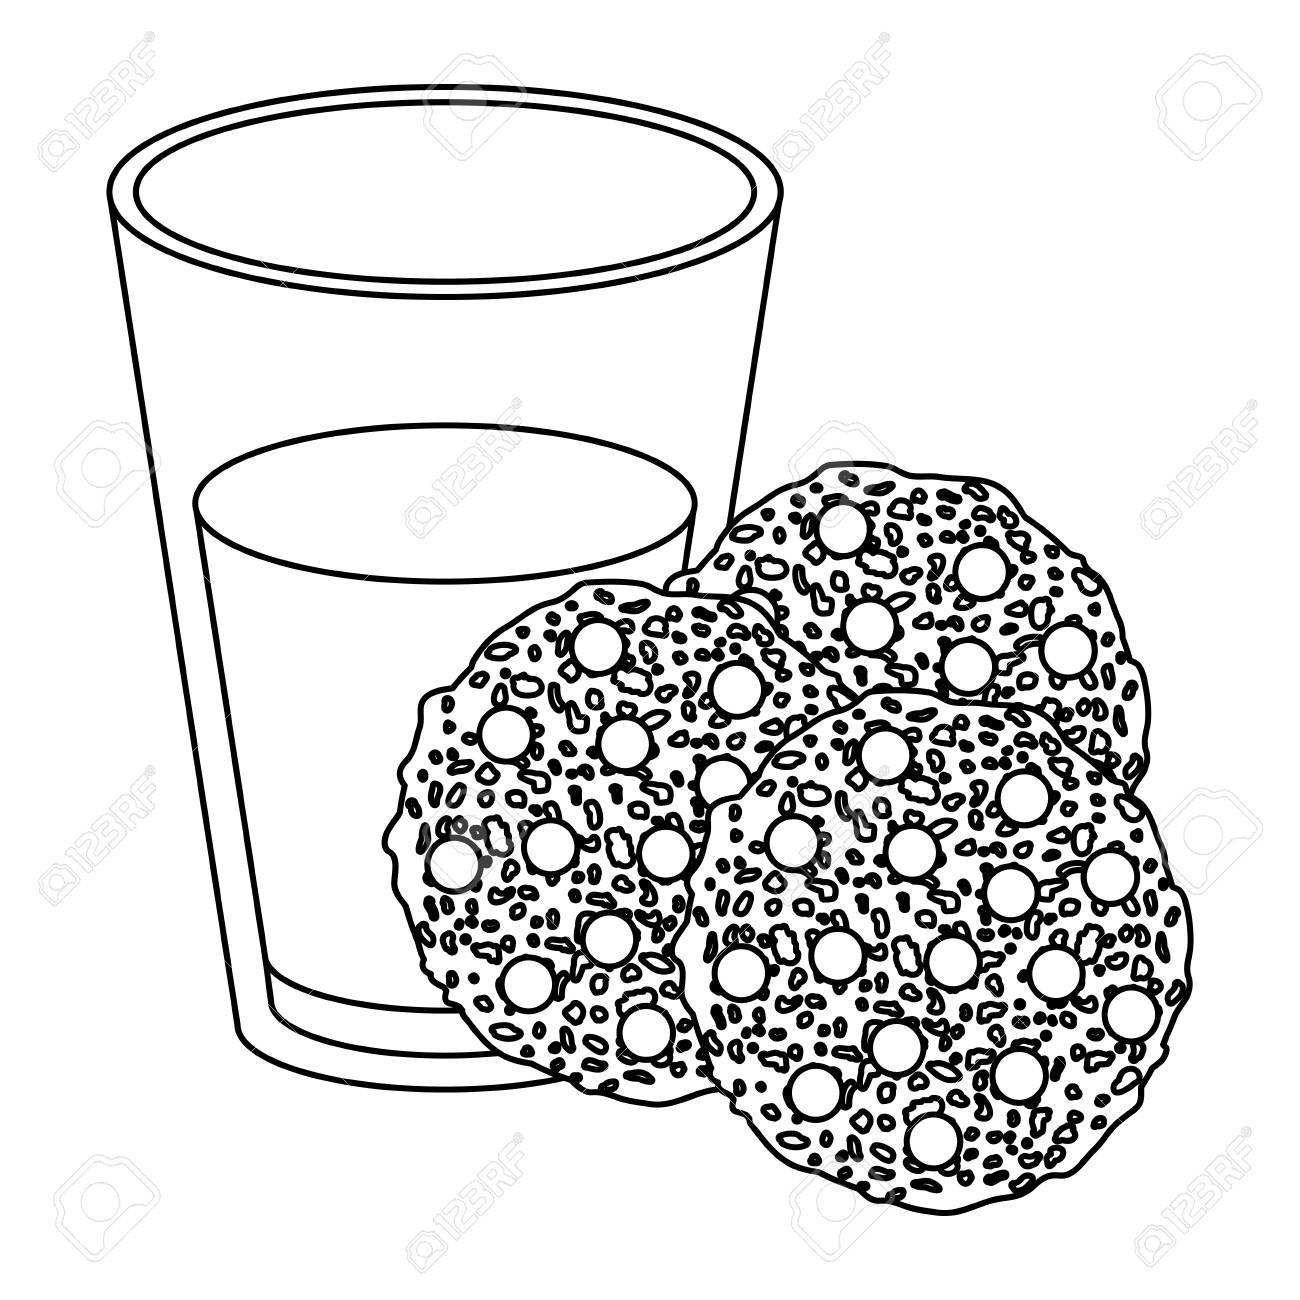 1300x1300 Chocolate Chip Cookies With Glass Of Milk Sketch Silhouette